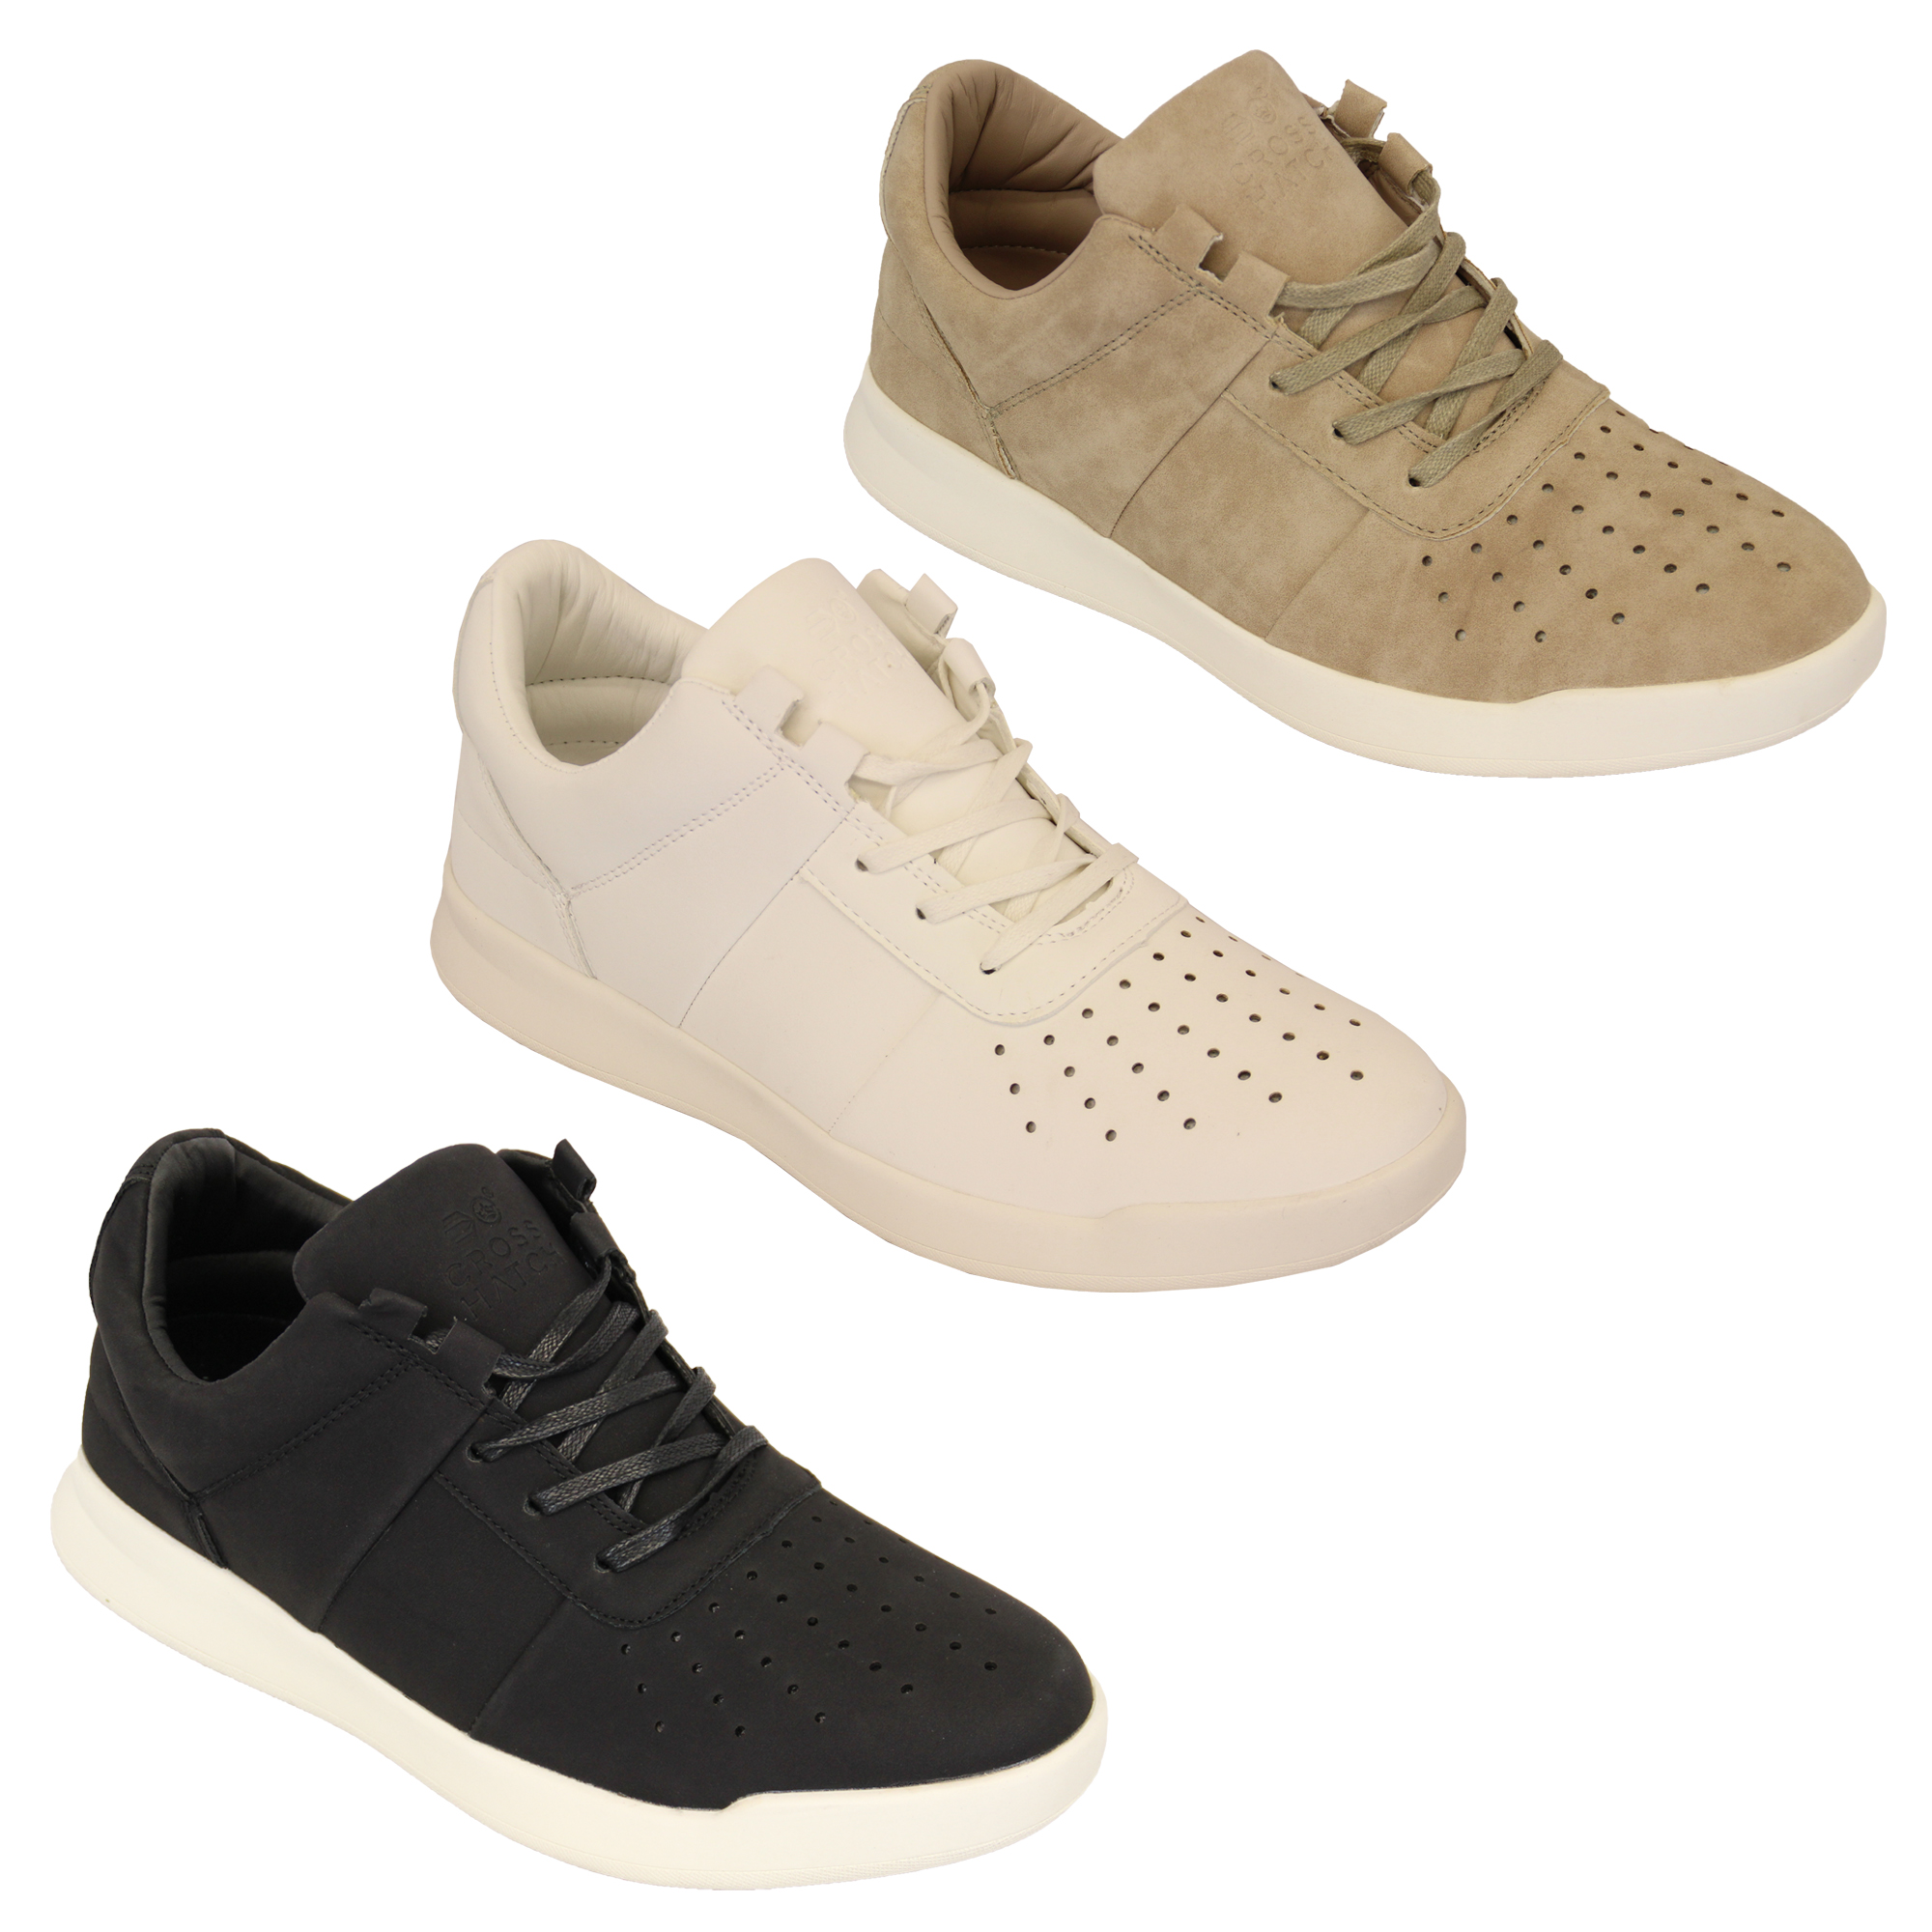 Mens-Trainers-Crosshatch-Running-Lace-Up-Jogging-Sports-Gym-Shoes-Casual-Fashion thumbnail 4